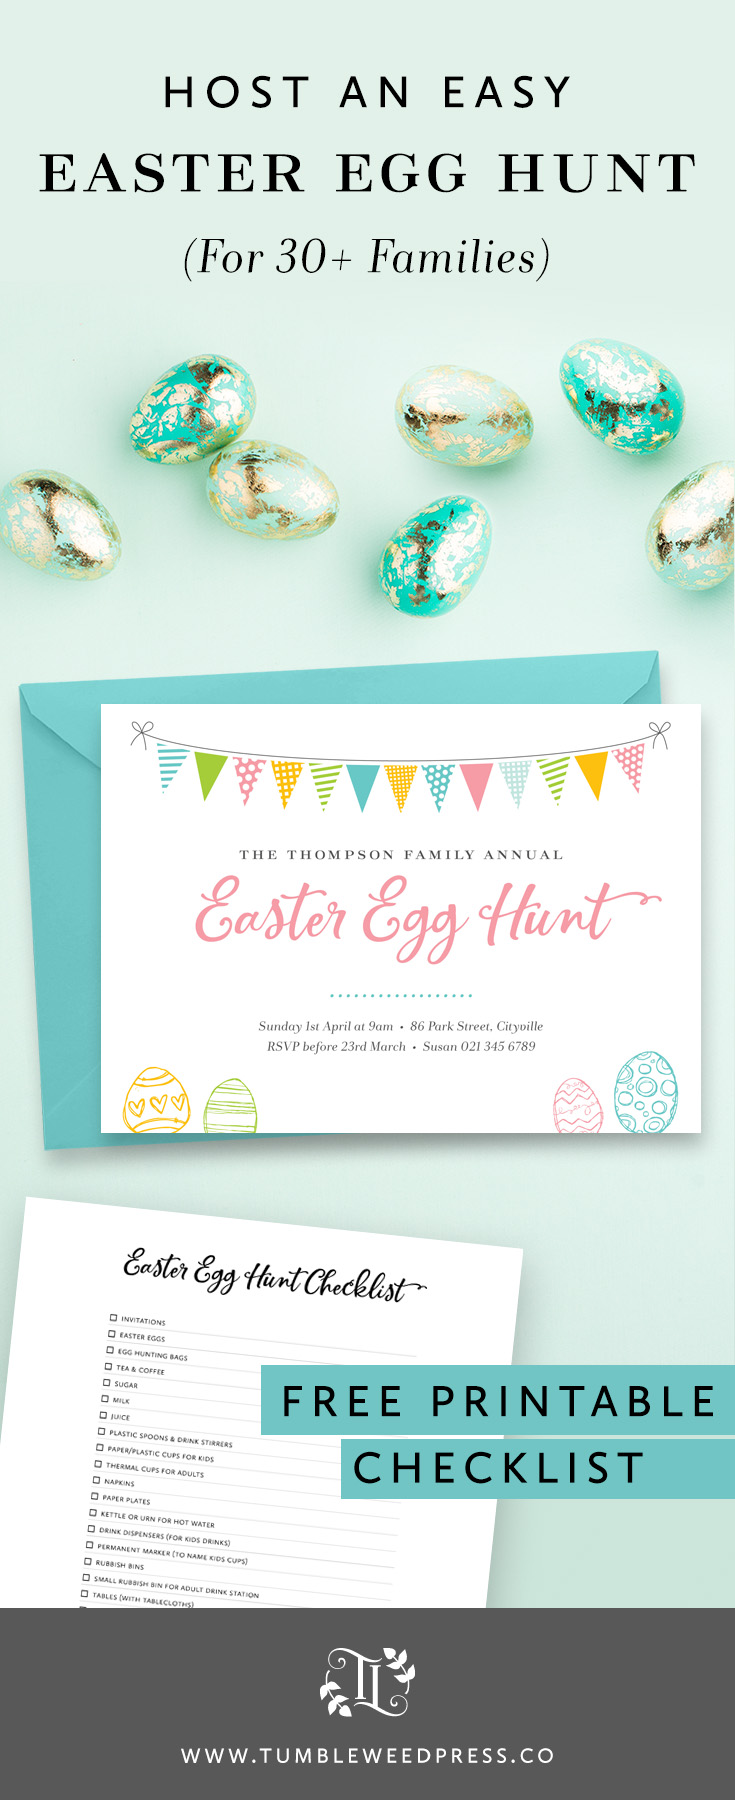 How to host an Easy Easter Egg Hunt for families from TumbleweedPress.Co